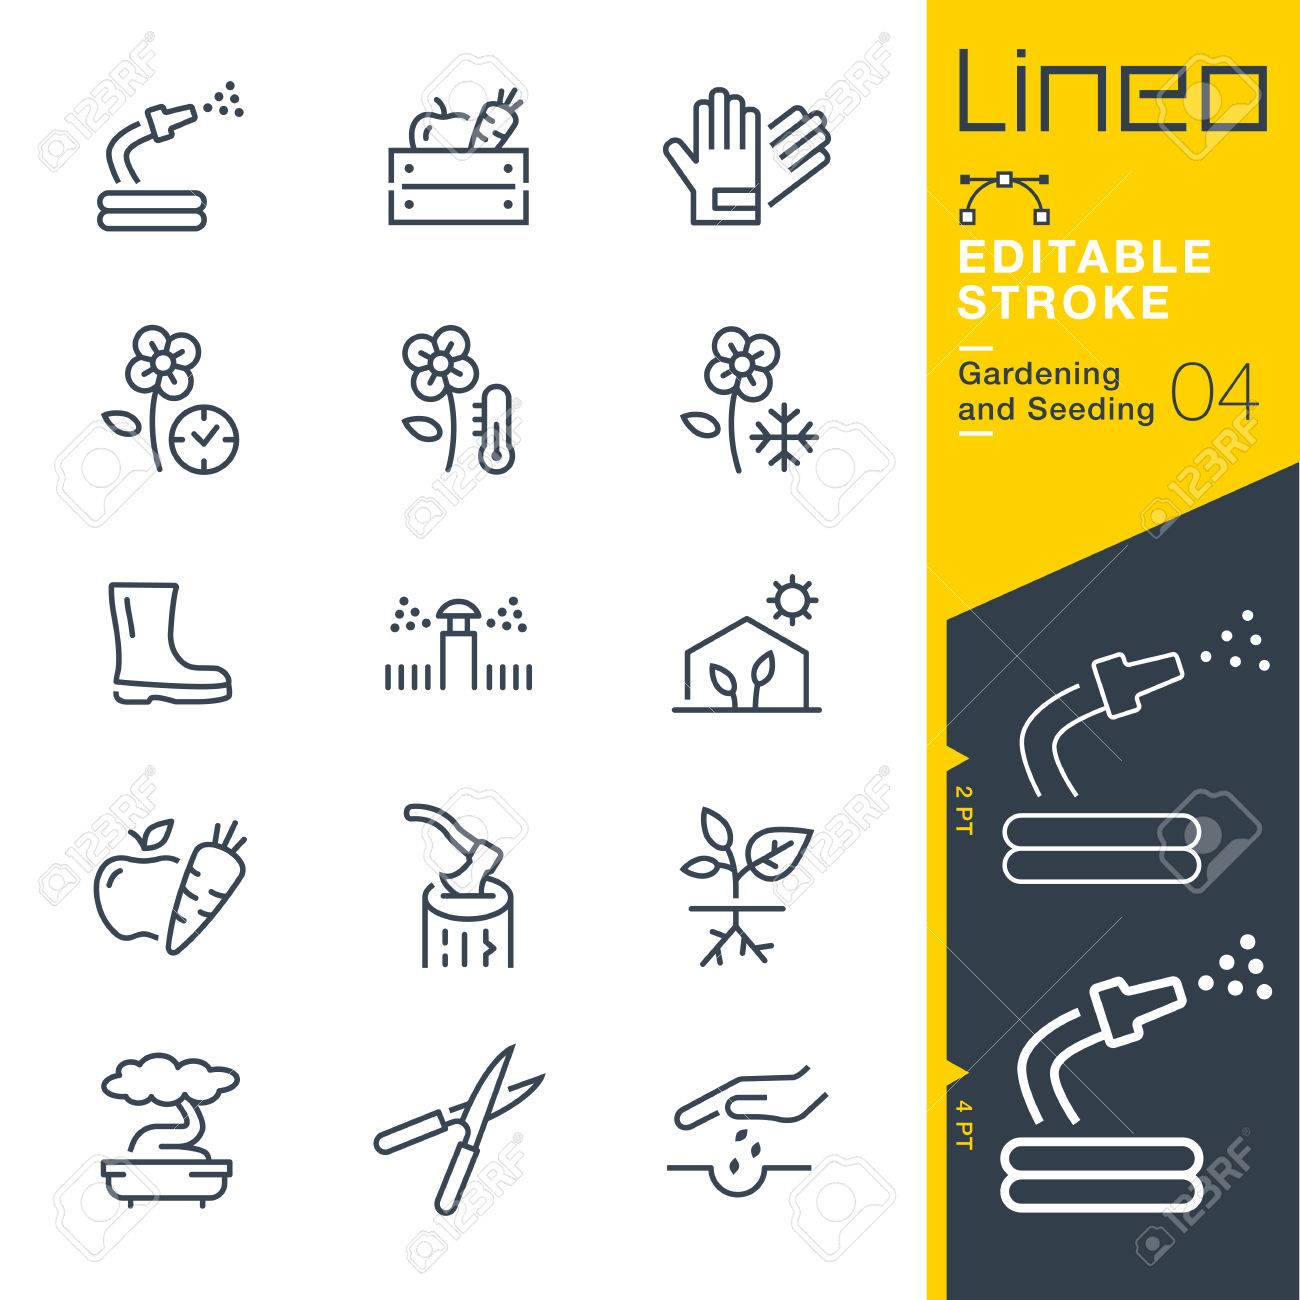 Lineo Editable Stroke - Gardening and Seeding line Vector icons - Adjust stroke weight - Change to any color - 79734021